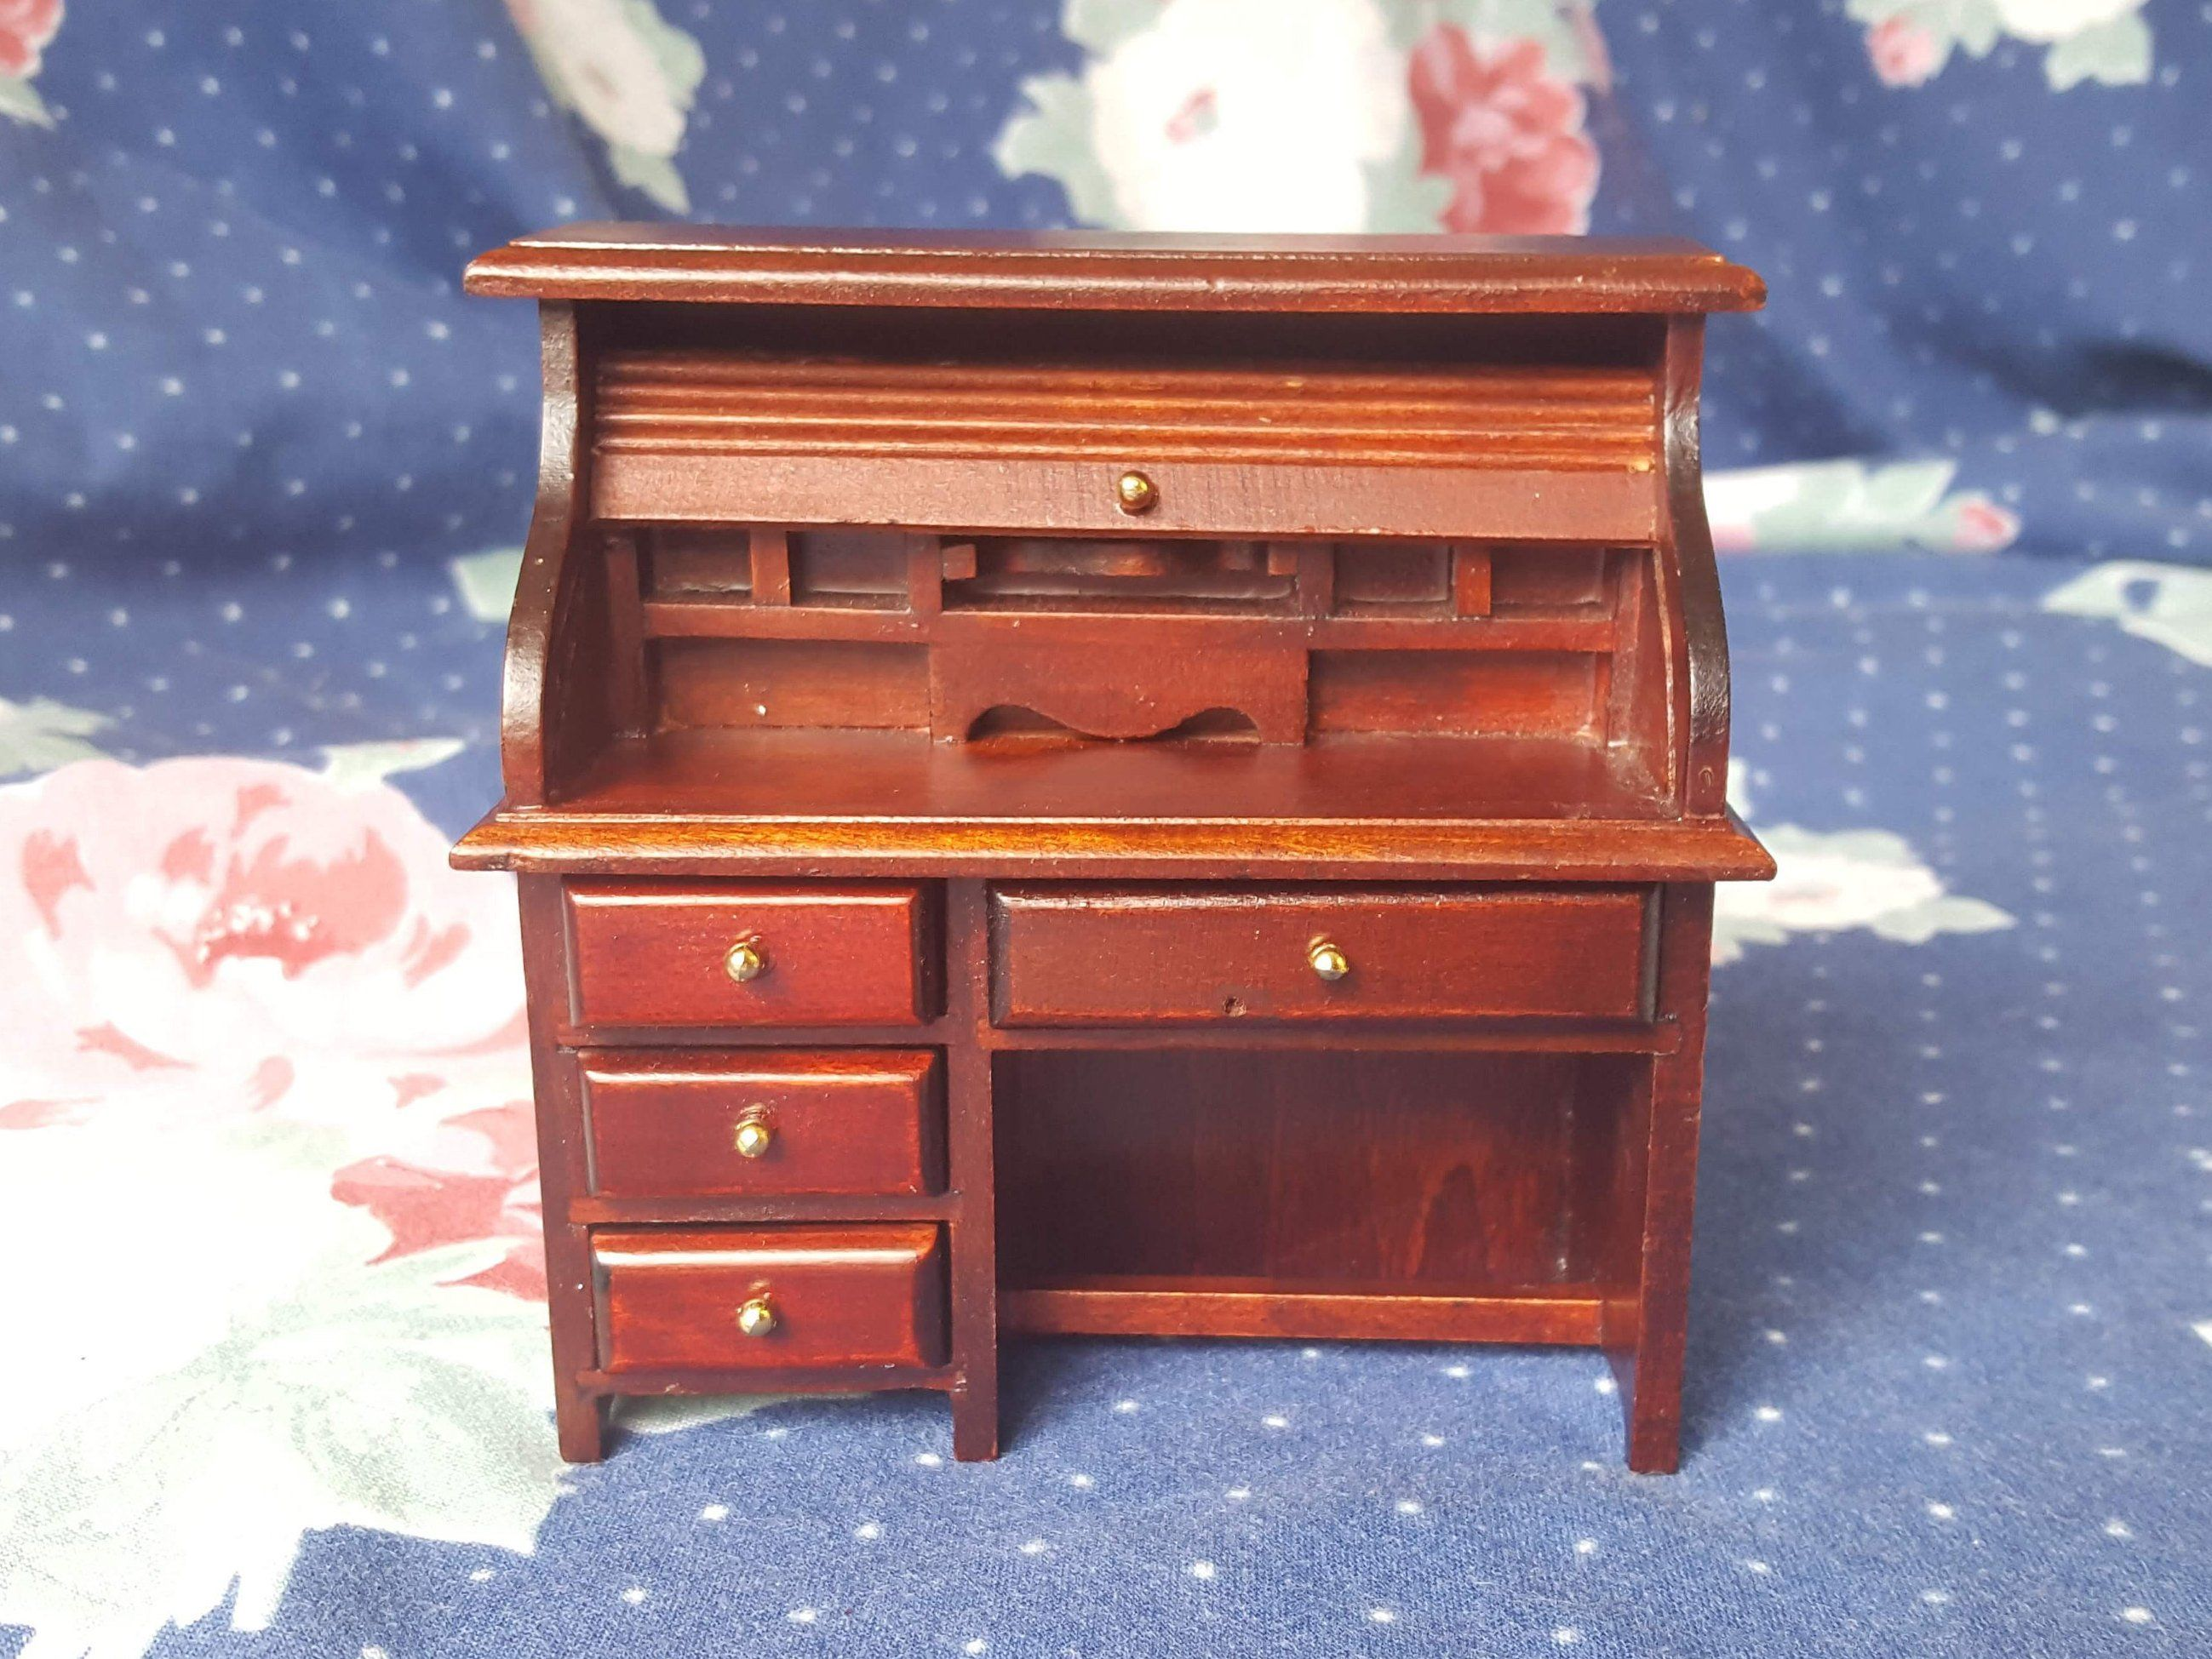 Miraculous Miniature Dollhouse Wood Roll Top Desk Office Shop School Download Free Architecture Designs Scobabritishbridgeorg